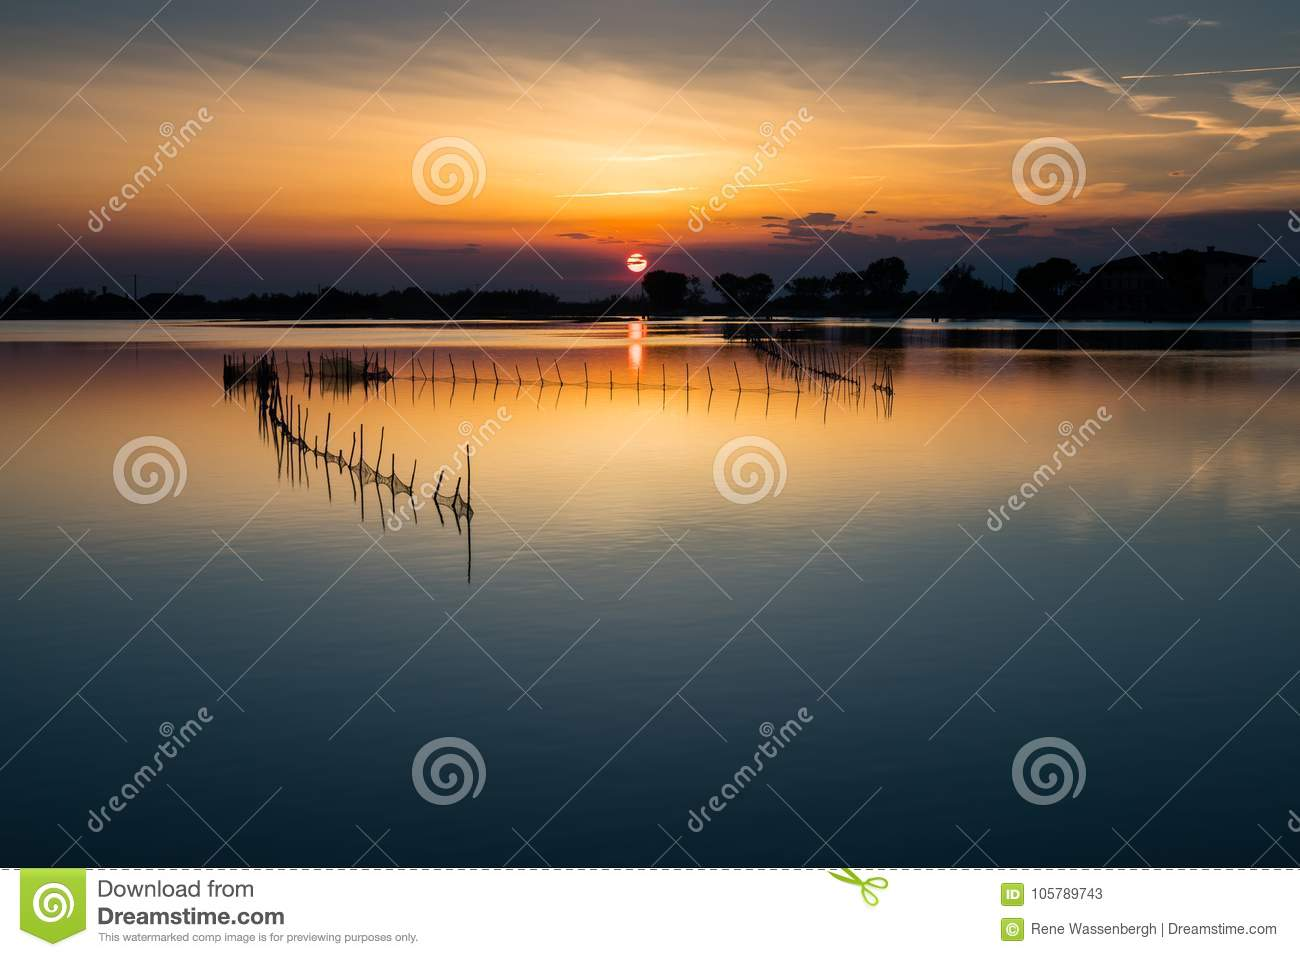 Sunset at a lake in italy stock image image of silhouette for Can fish see water